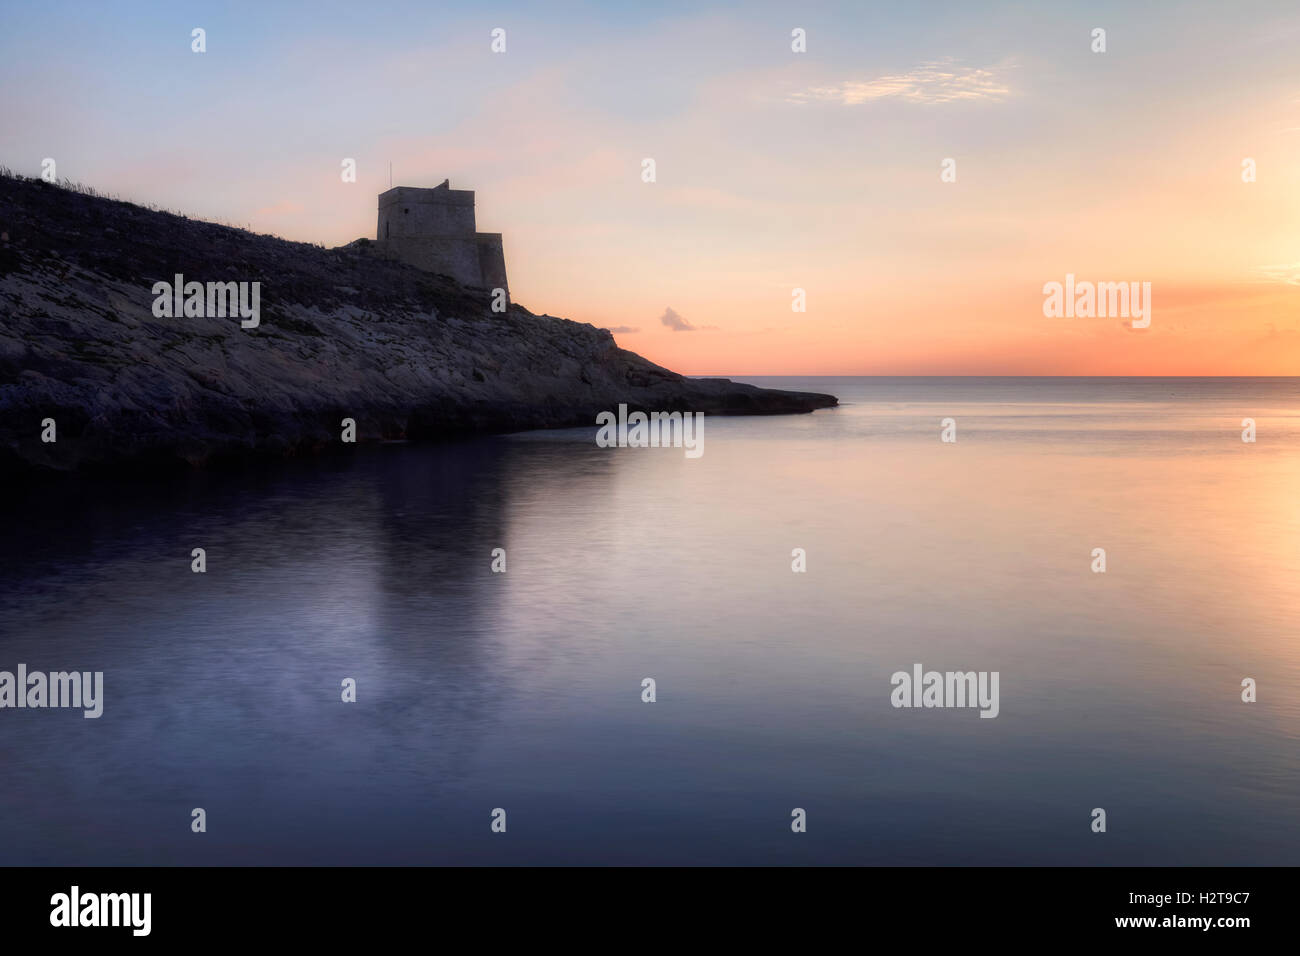 Xlendi Bay, Xlendi Tower, Gozo, Malta - Stock Image